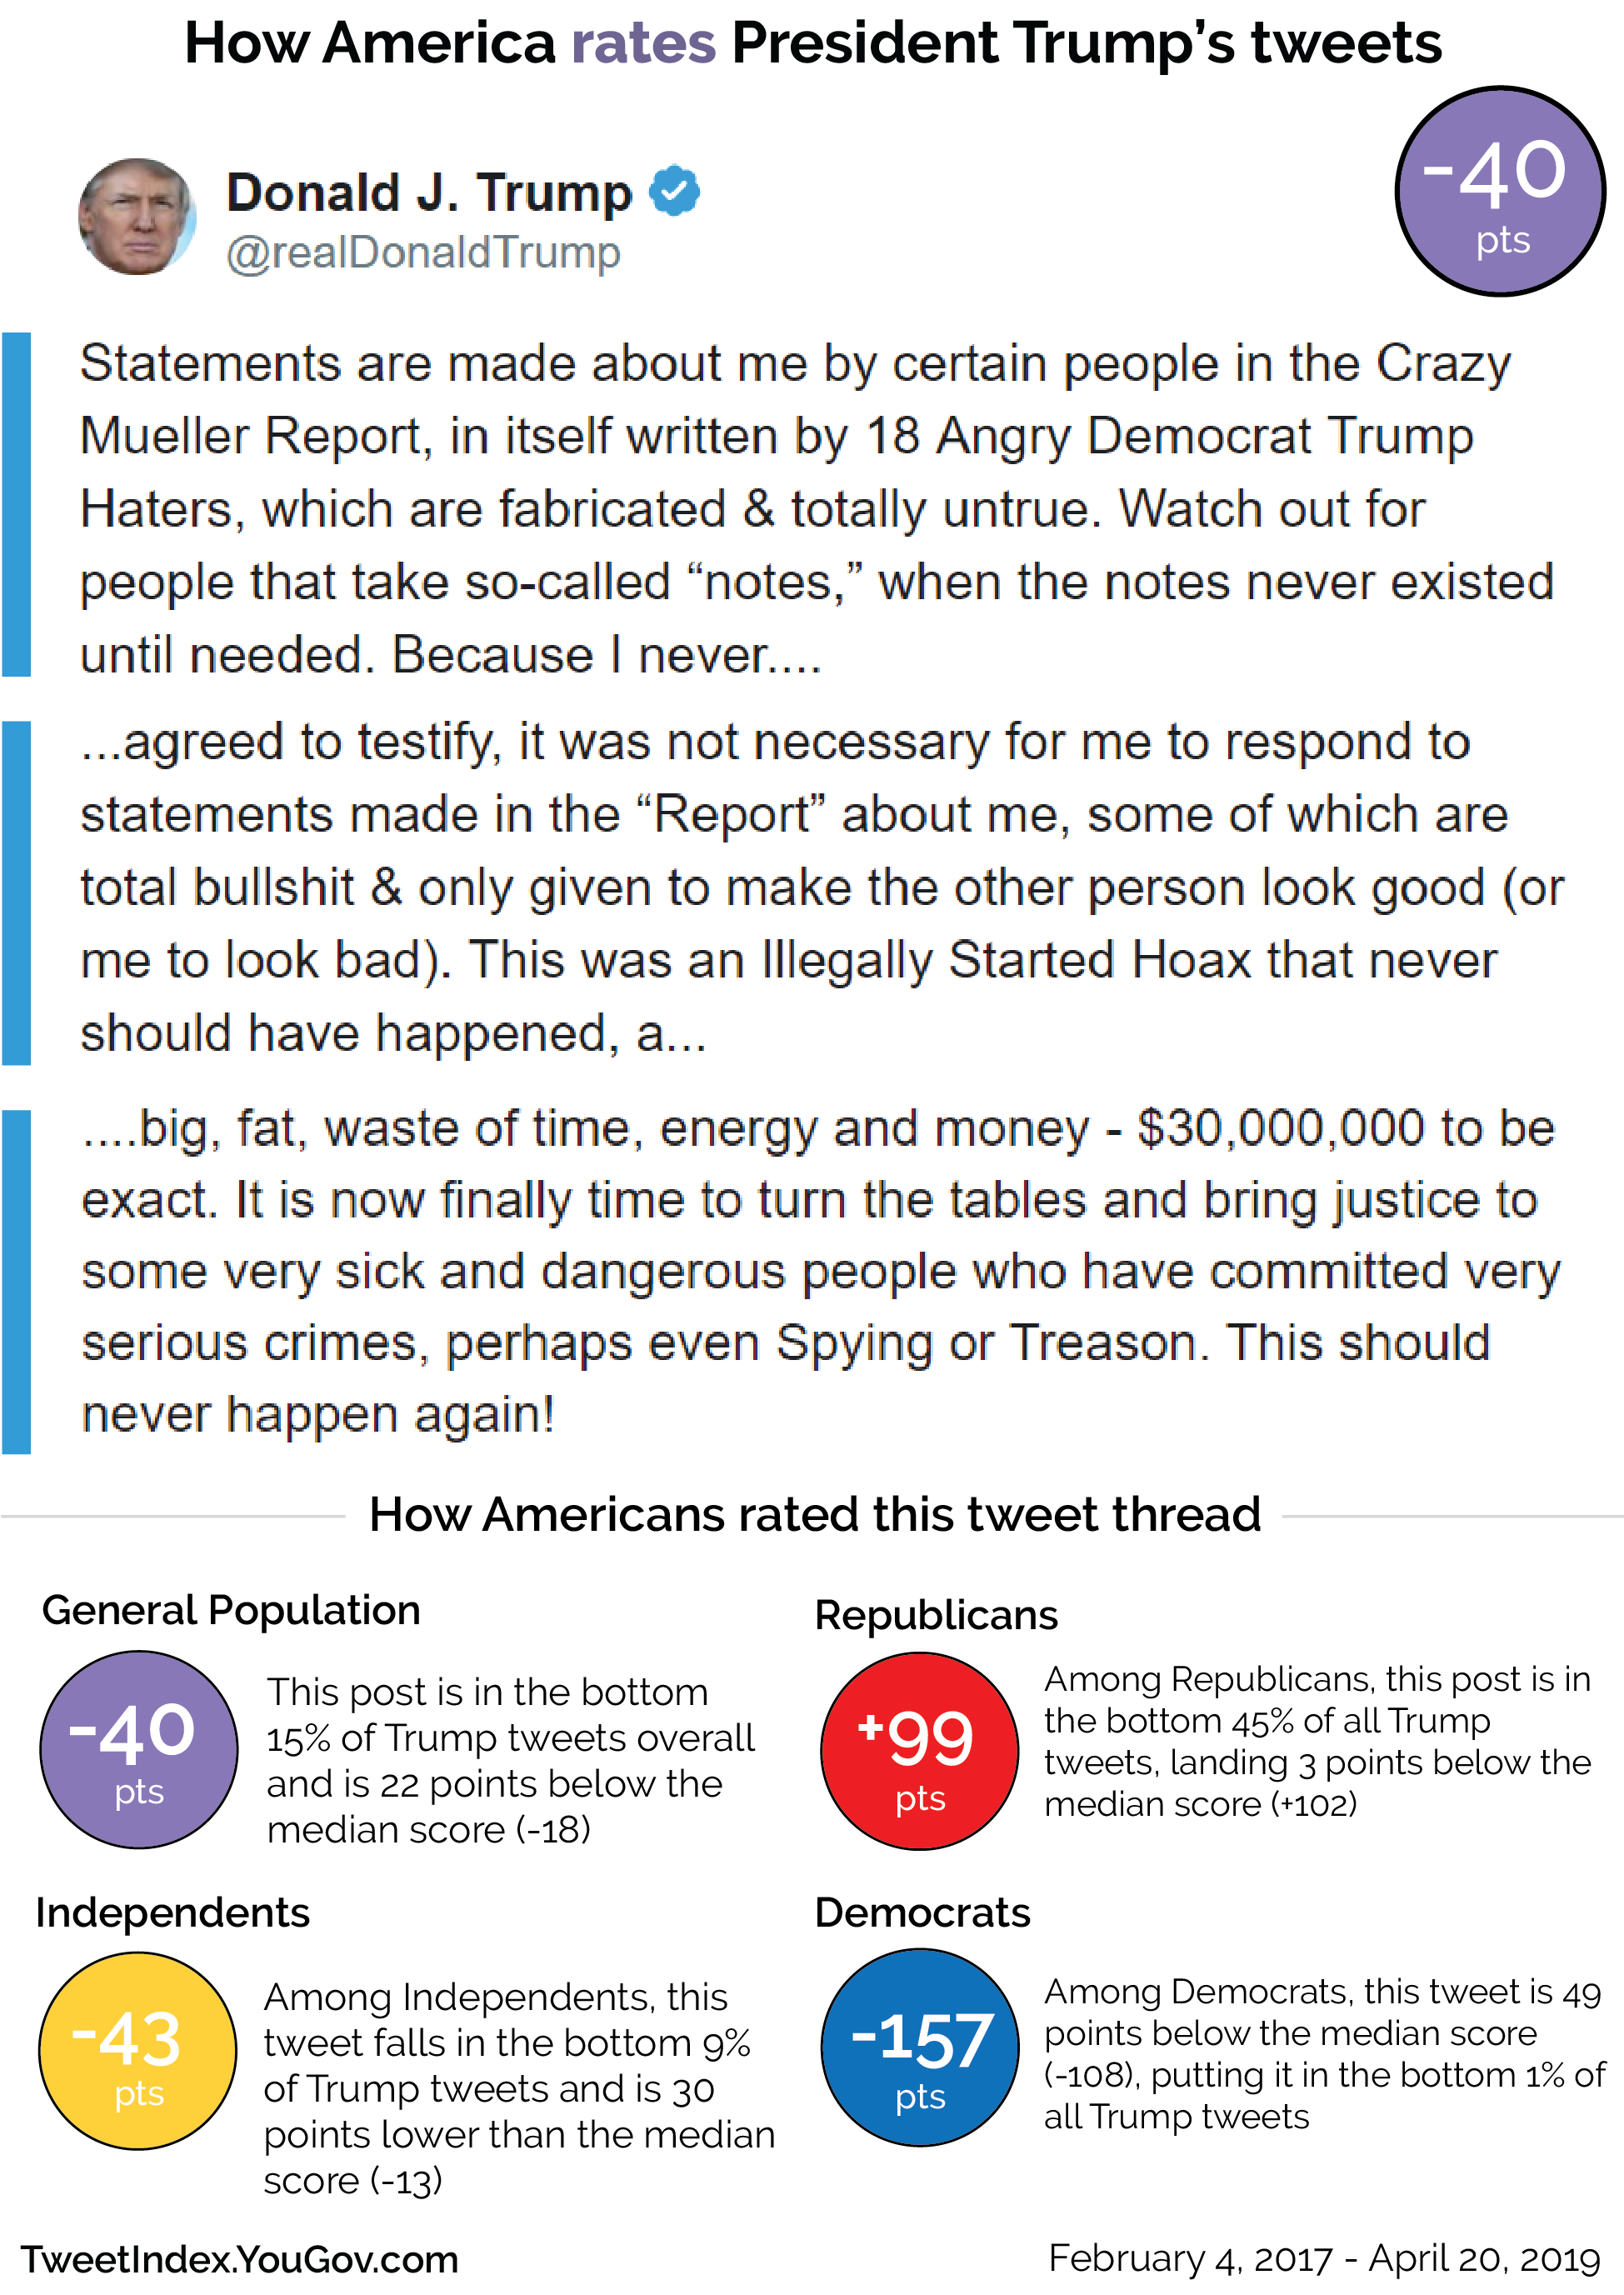 How America rates President Donald Trump's tweets about the Mueller report